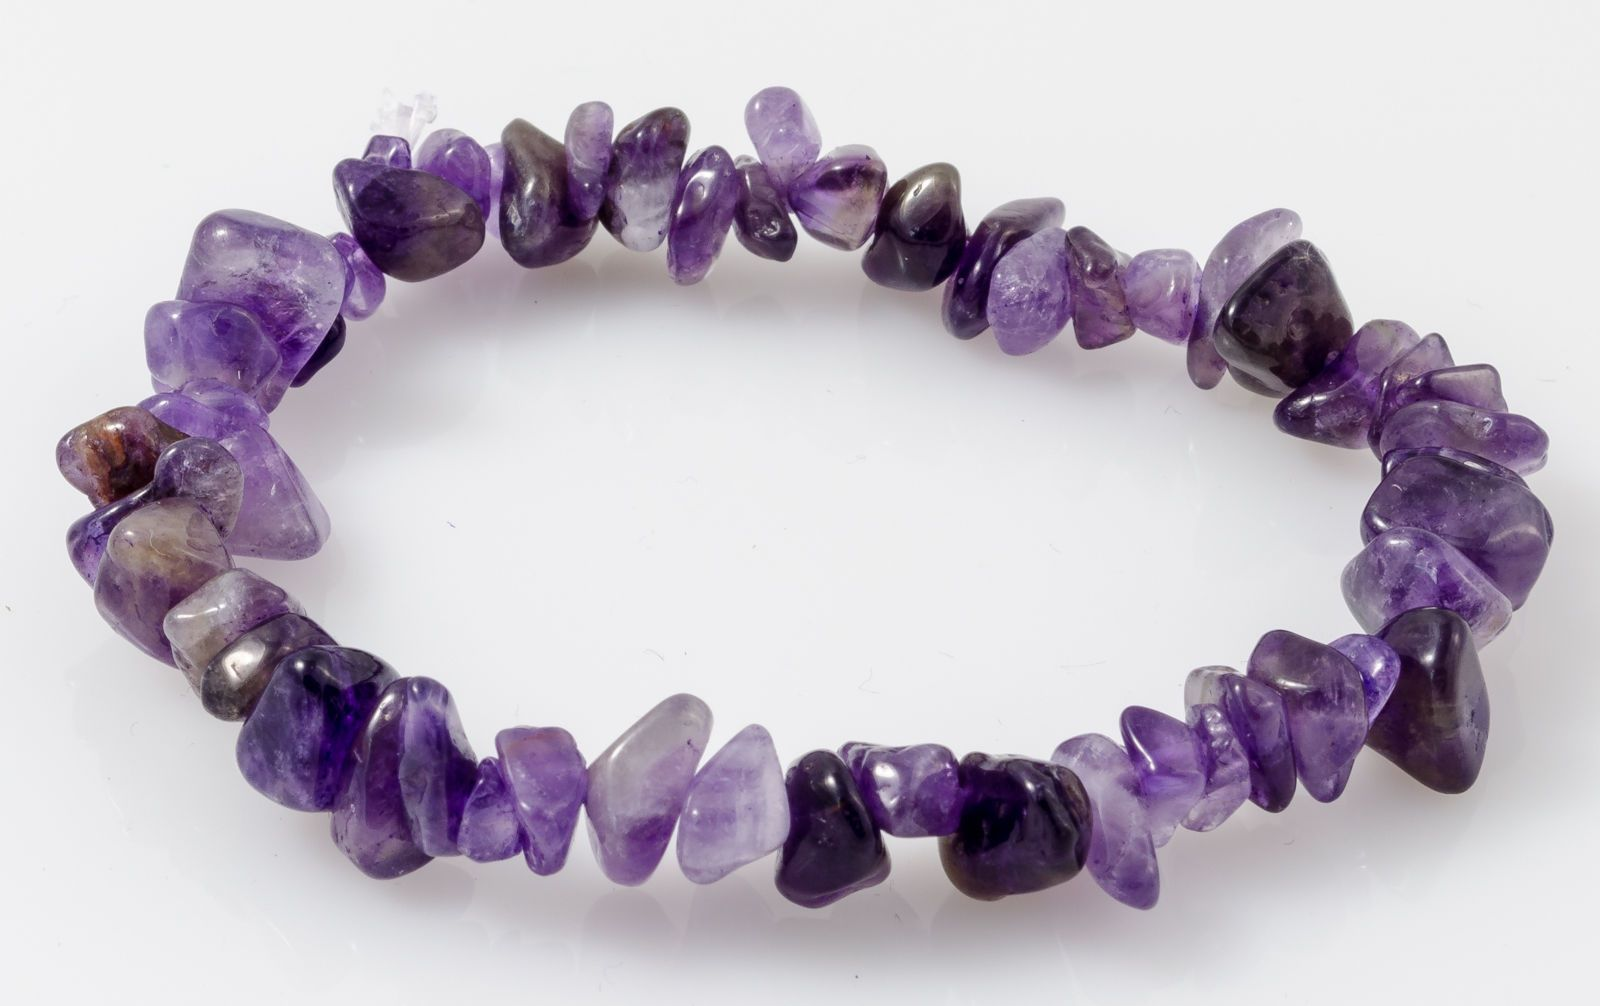 Charmed Amethyst Healing Bracelet - price includes postage